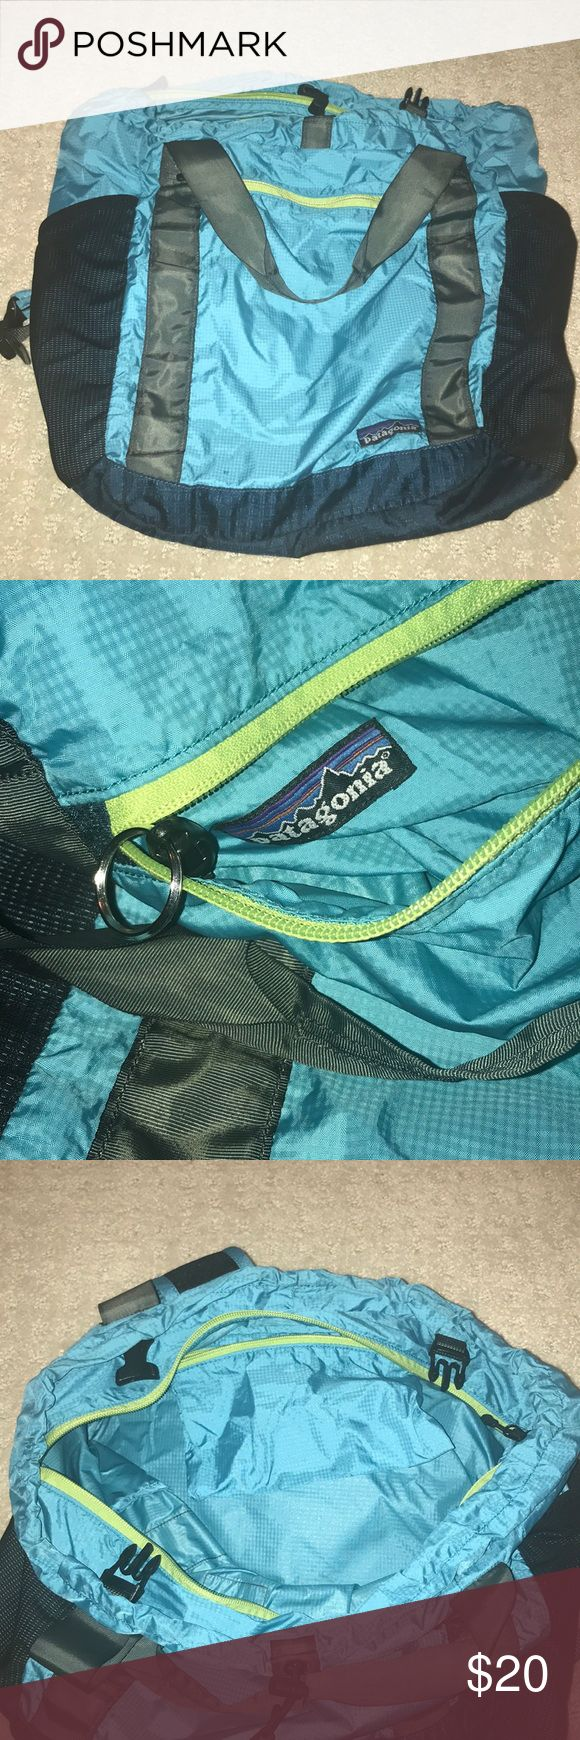 NWOT lightweight Patagonia backpack W- 14.5 in  L- 18.5 in  D- 7 in Lots of pockets and a hook for your keys Patagonia Bags Backpacks